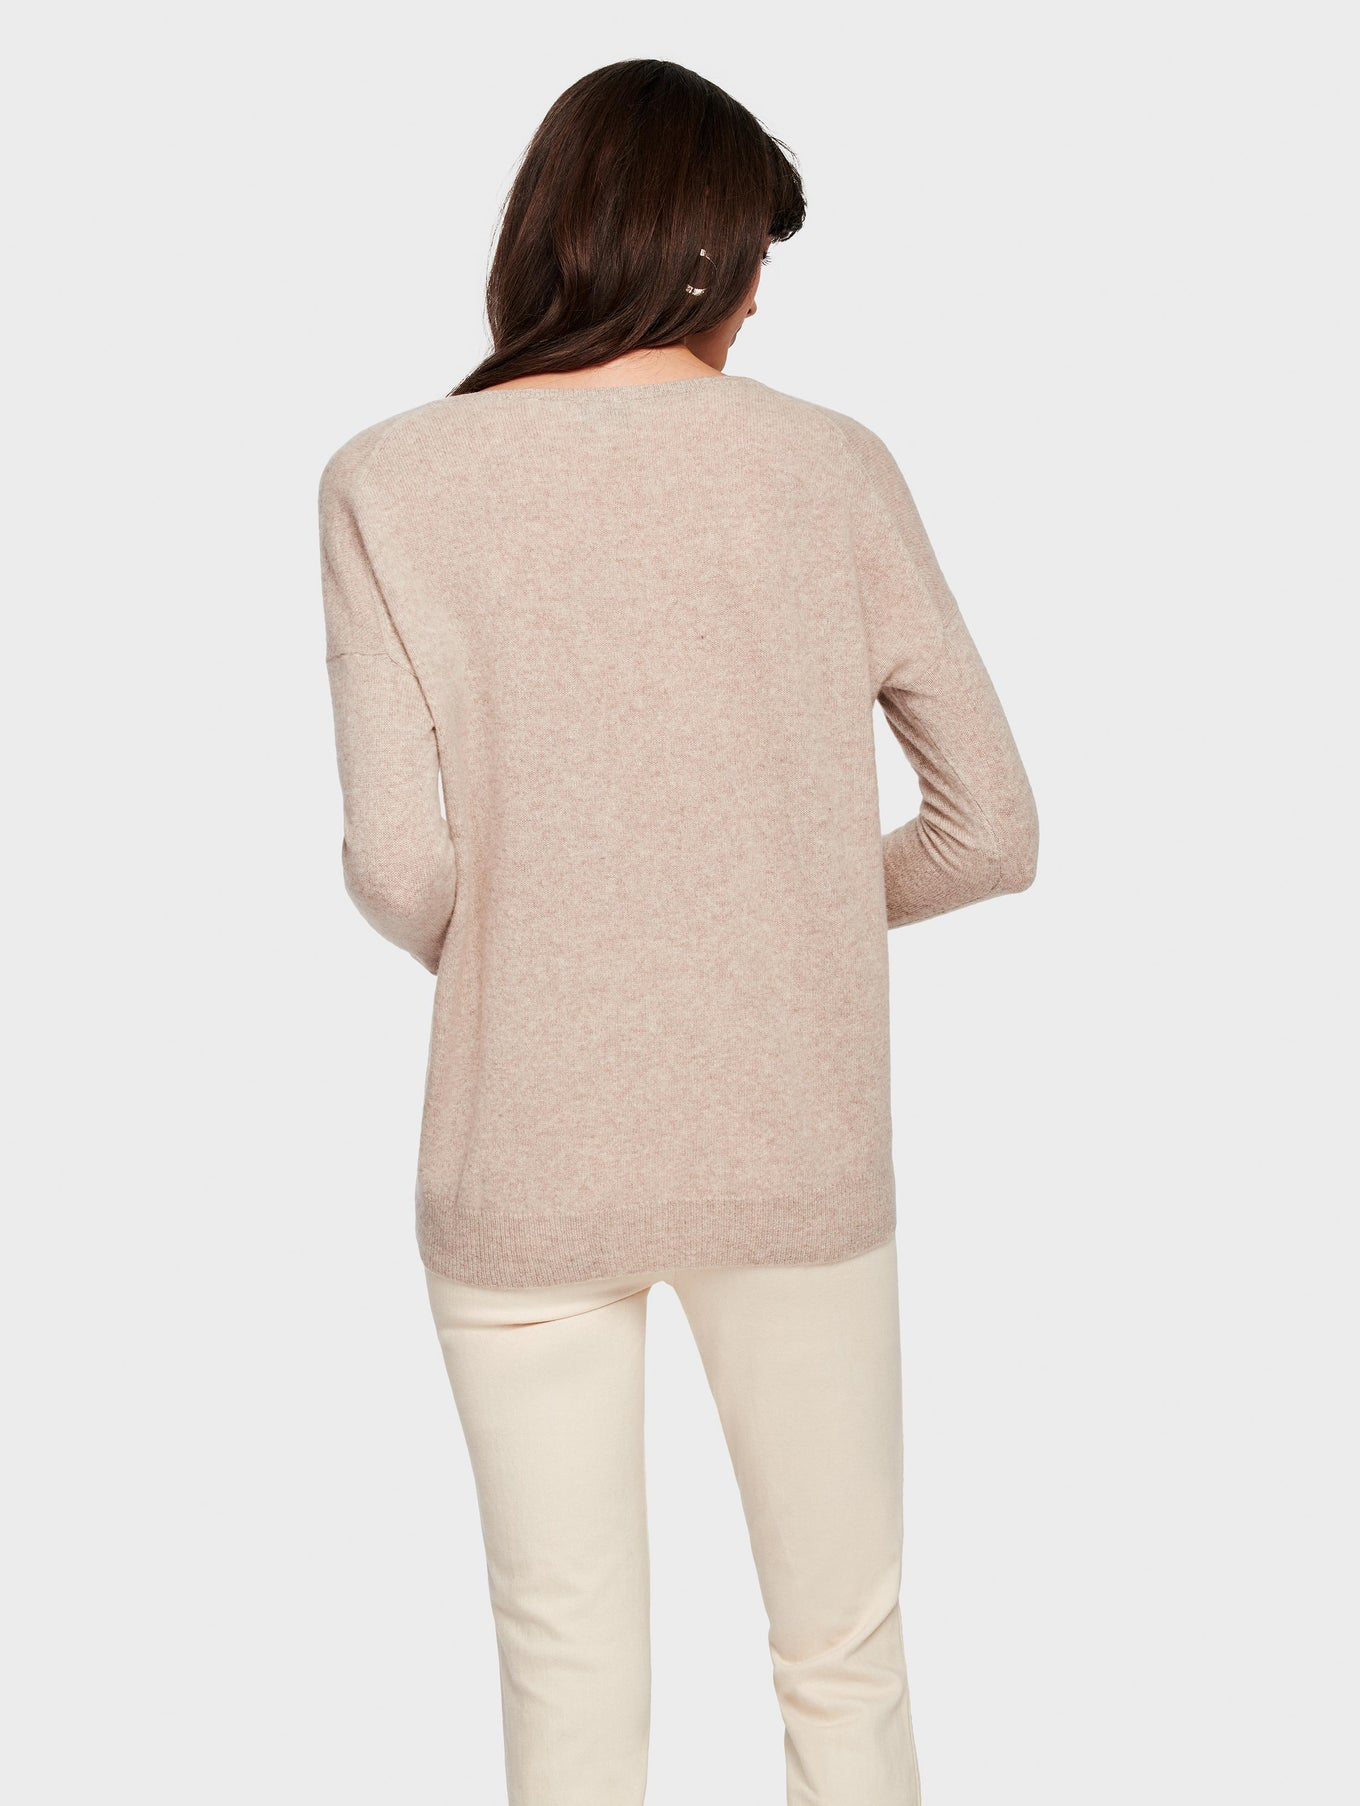 Essential Cashmere V Neck - Sand Wisp Heather - Image 3